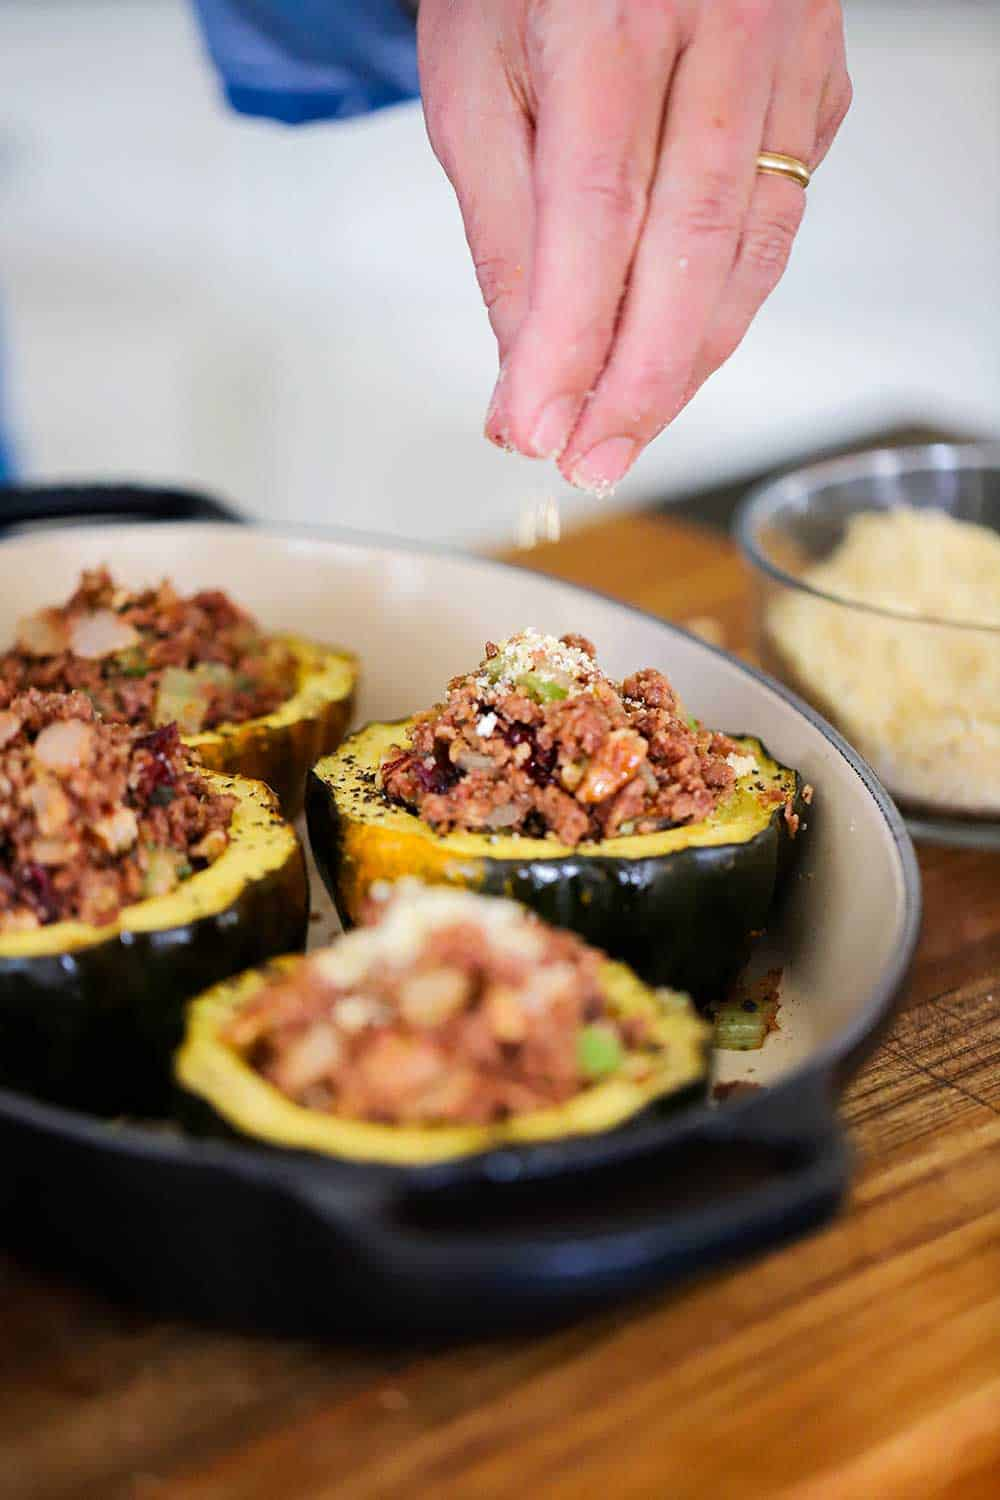 A hand sprinkling bread crumbs onto of stuffed acorn squash in a baking dish.